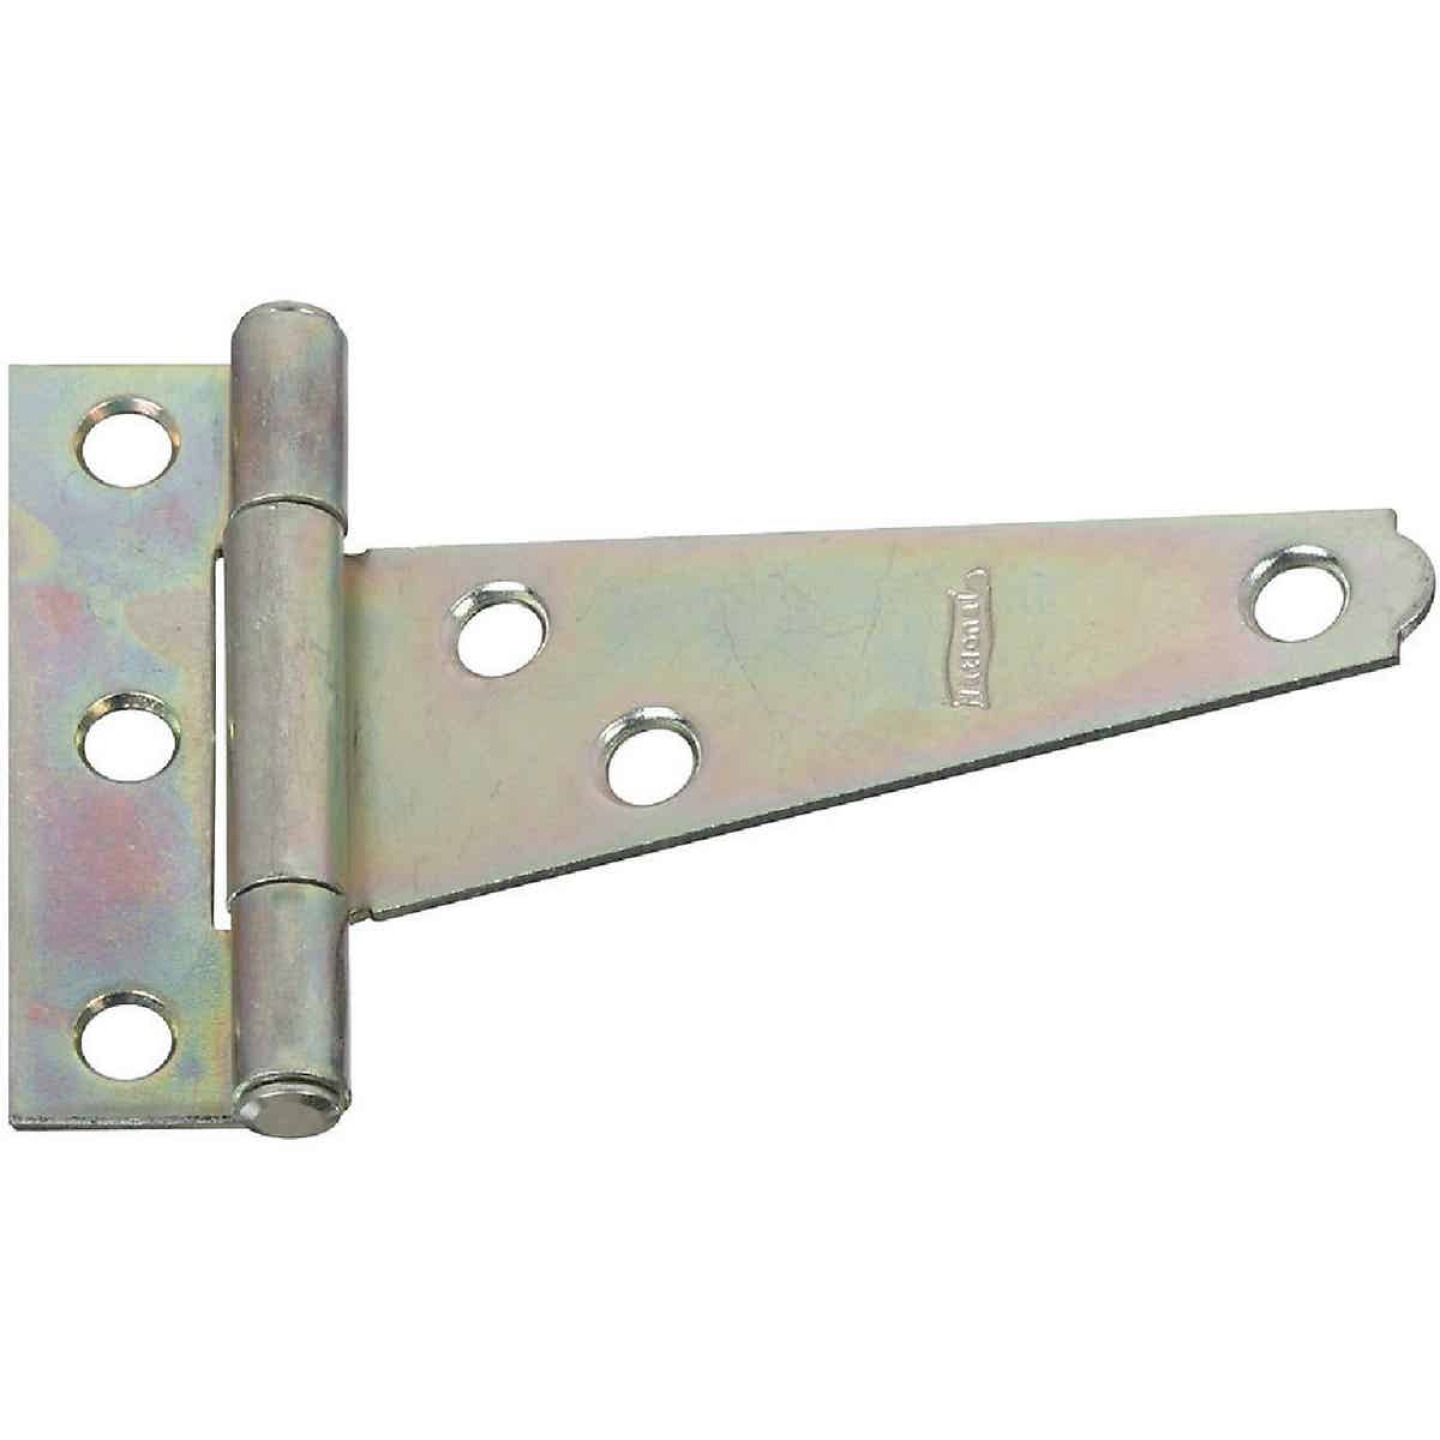 National 3 In. Light Duty T-Hinge With Screw (2 Count) Image 1